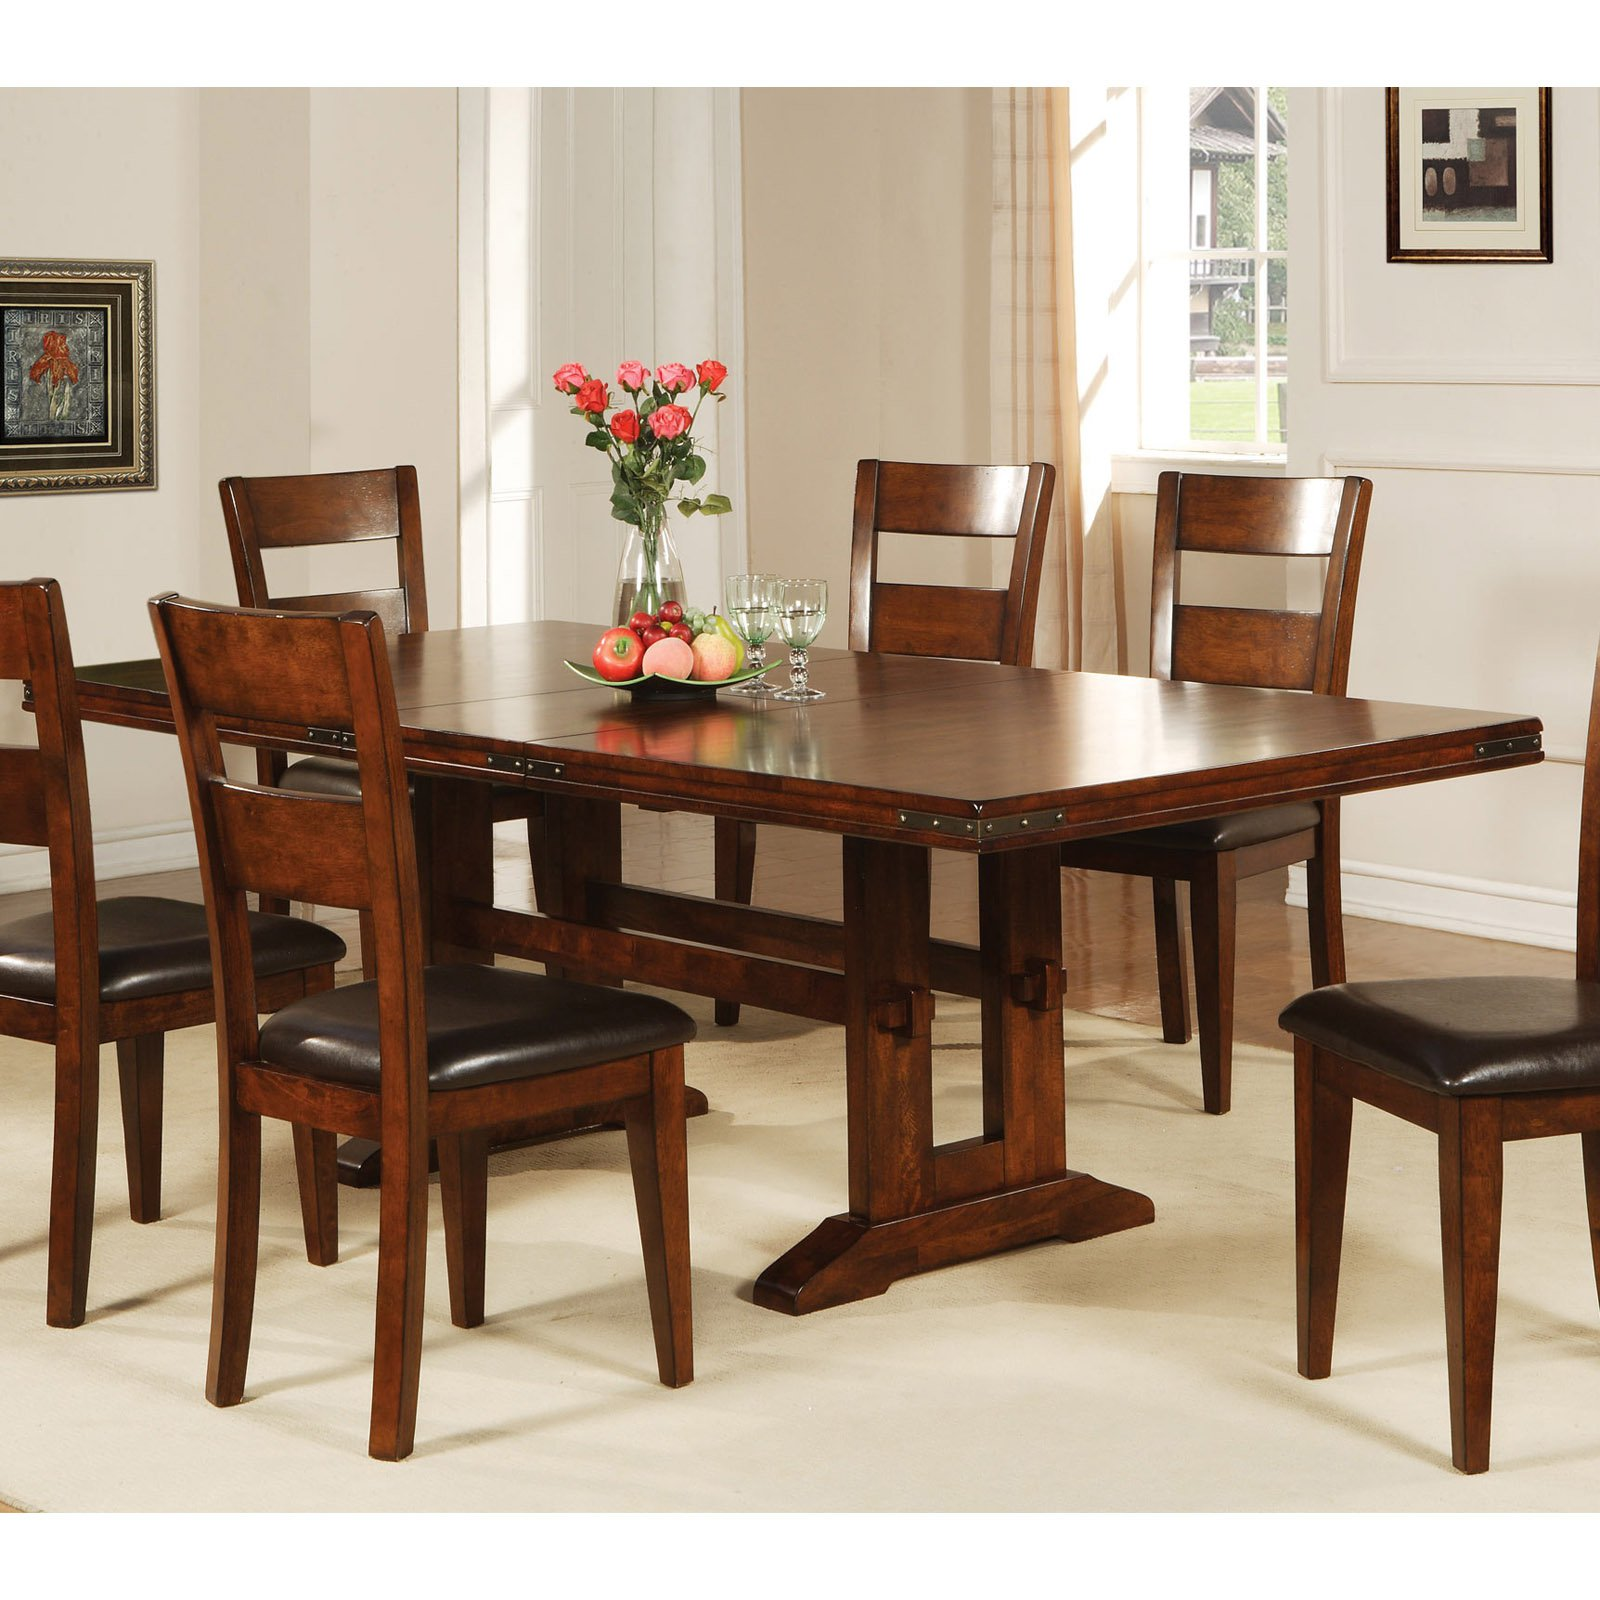 Trestle Dining Table With 18 In. Butterfly Leaf